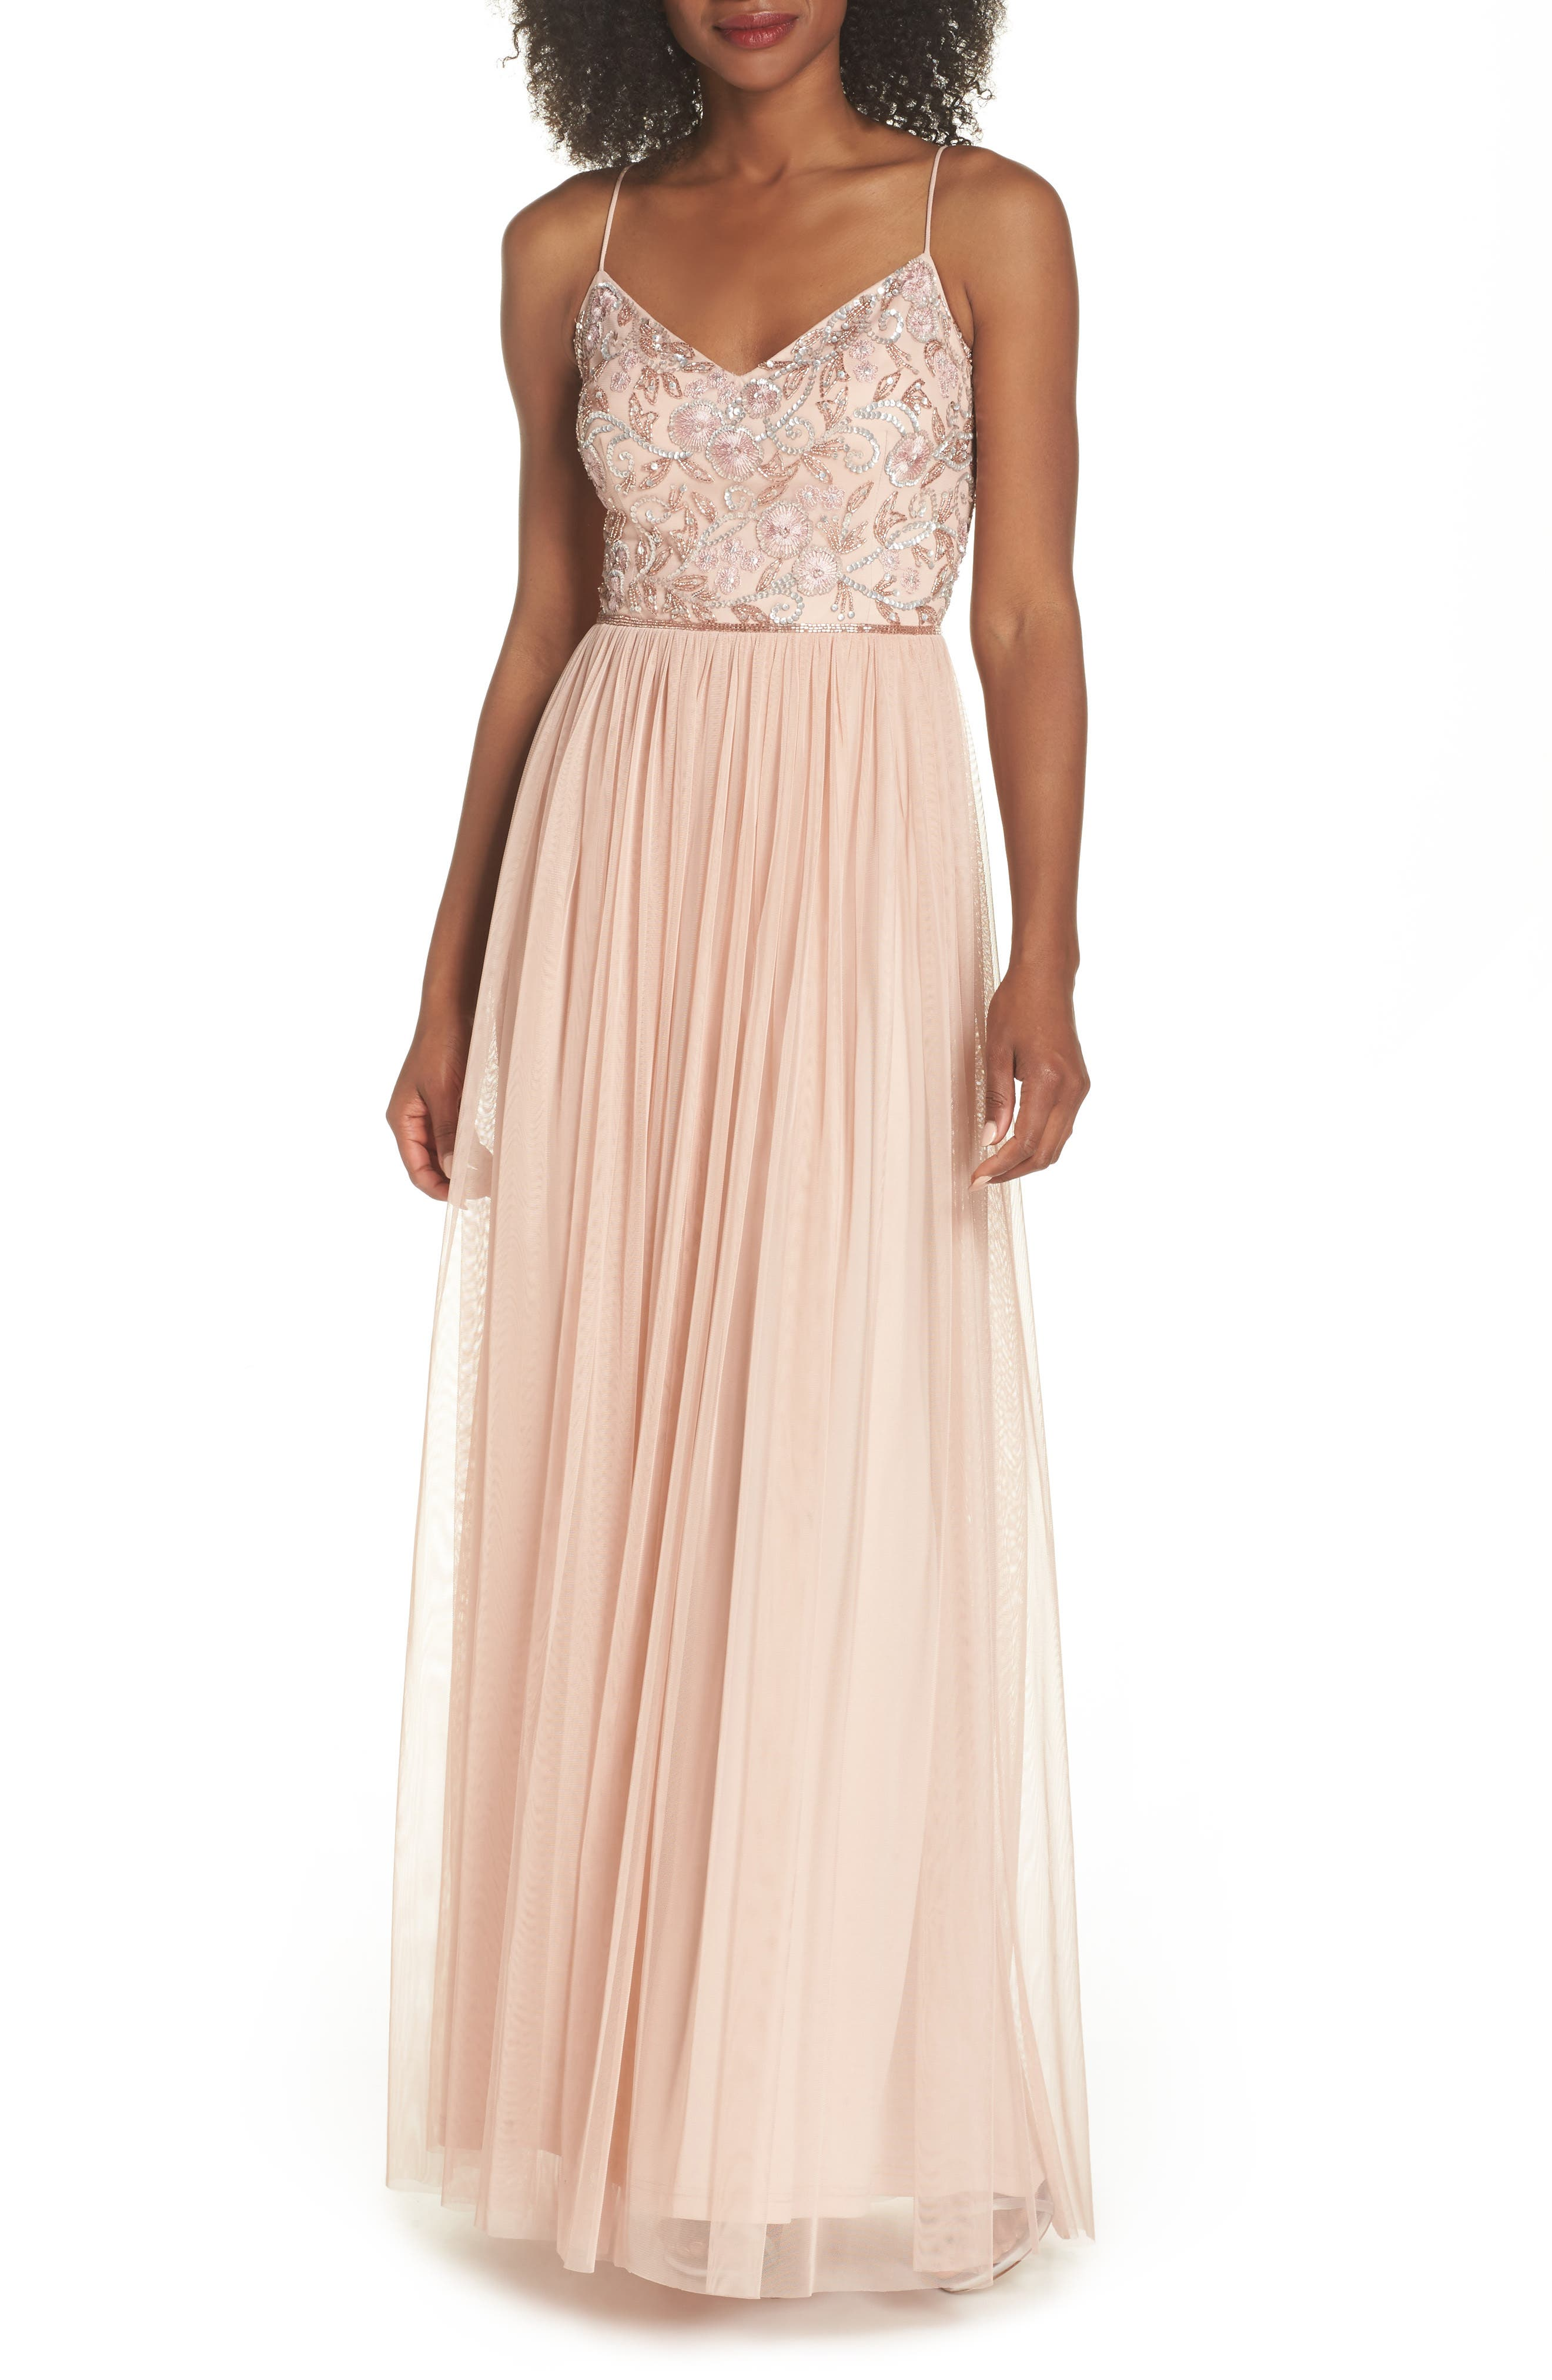 ADRIANNA PAPELL BEADED MESH GOWN, BLUSH | ModeSens